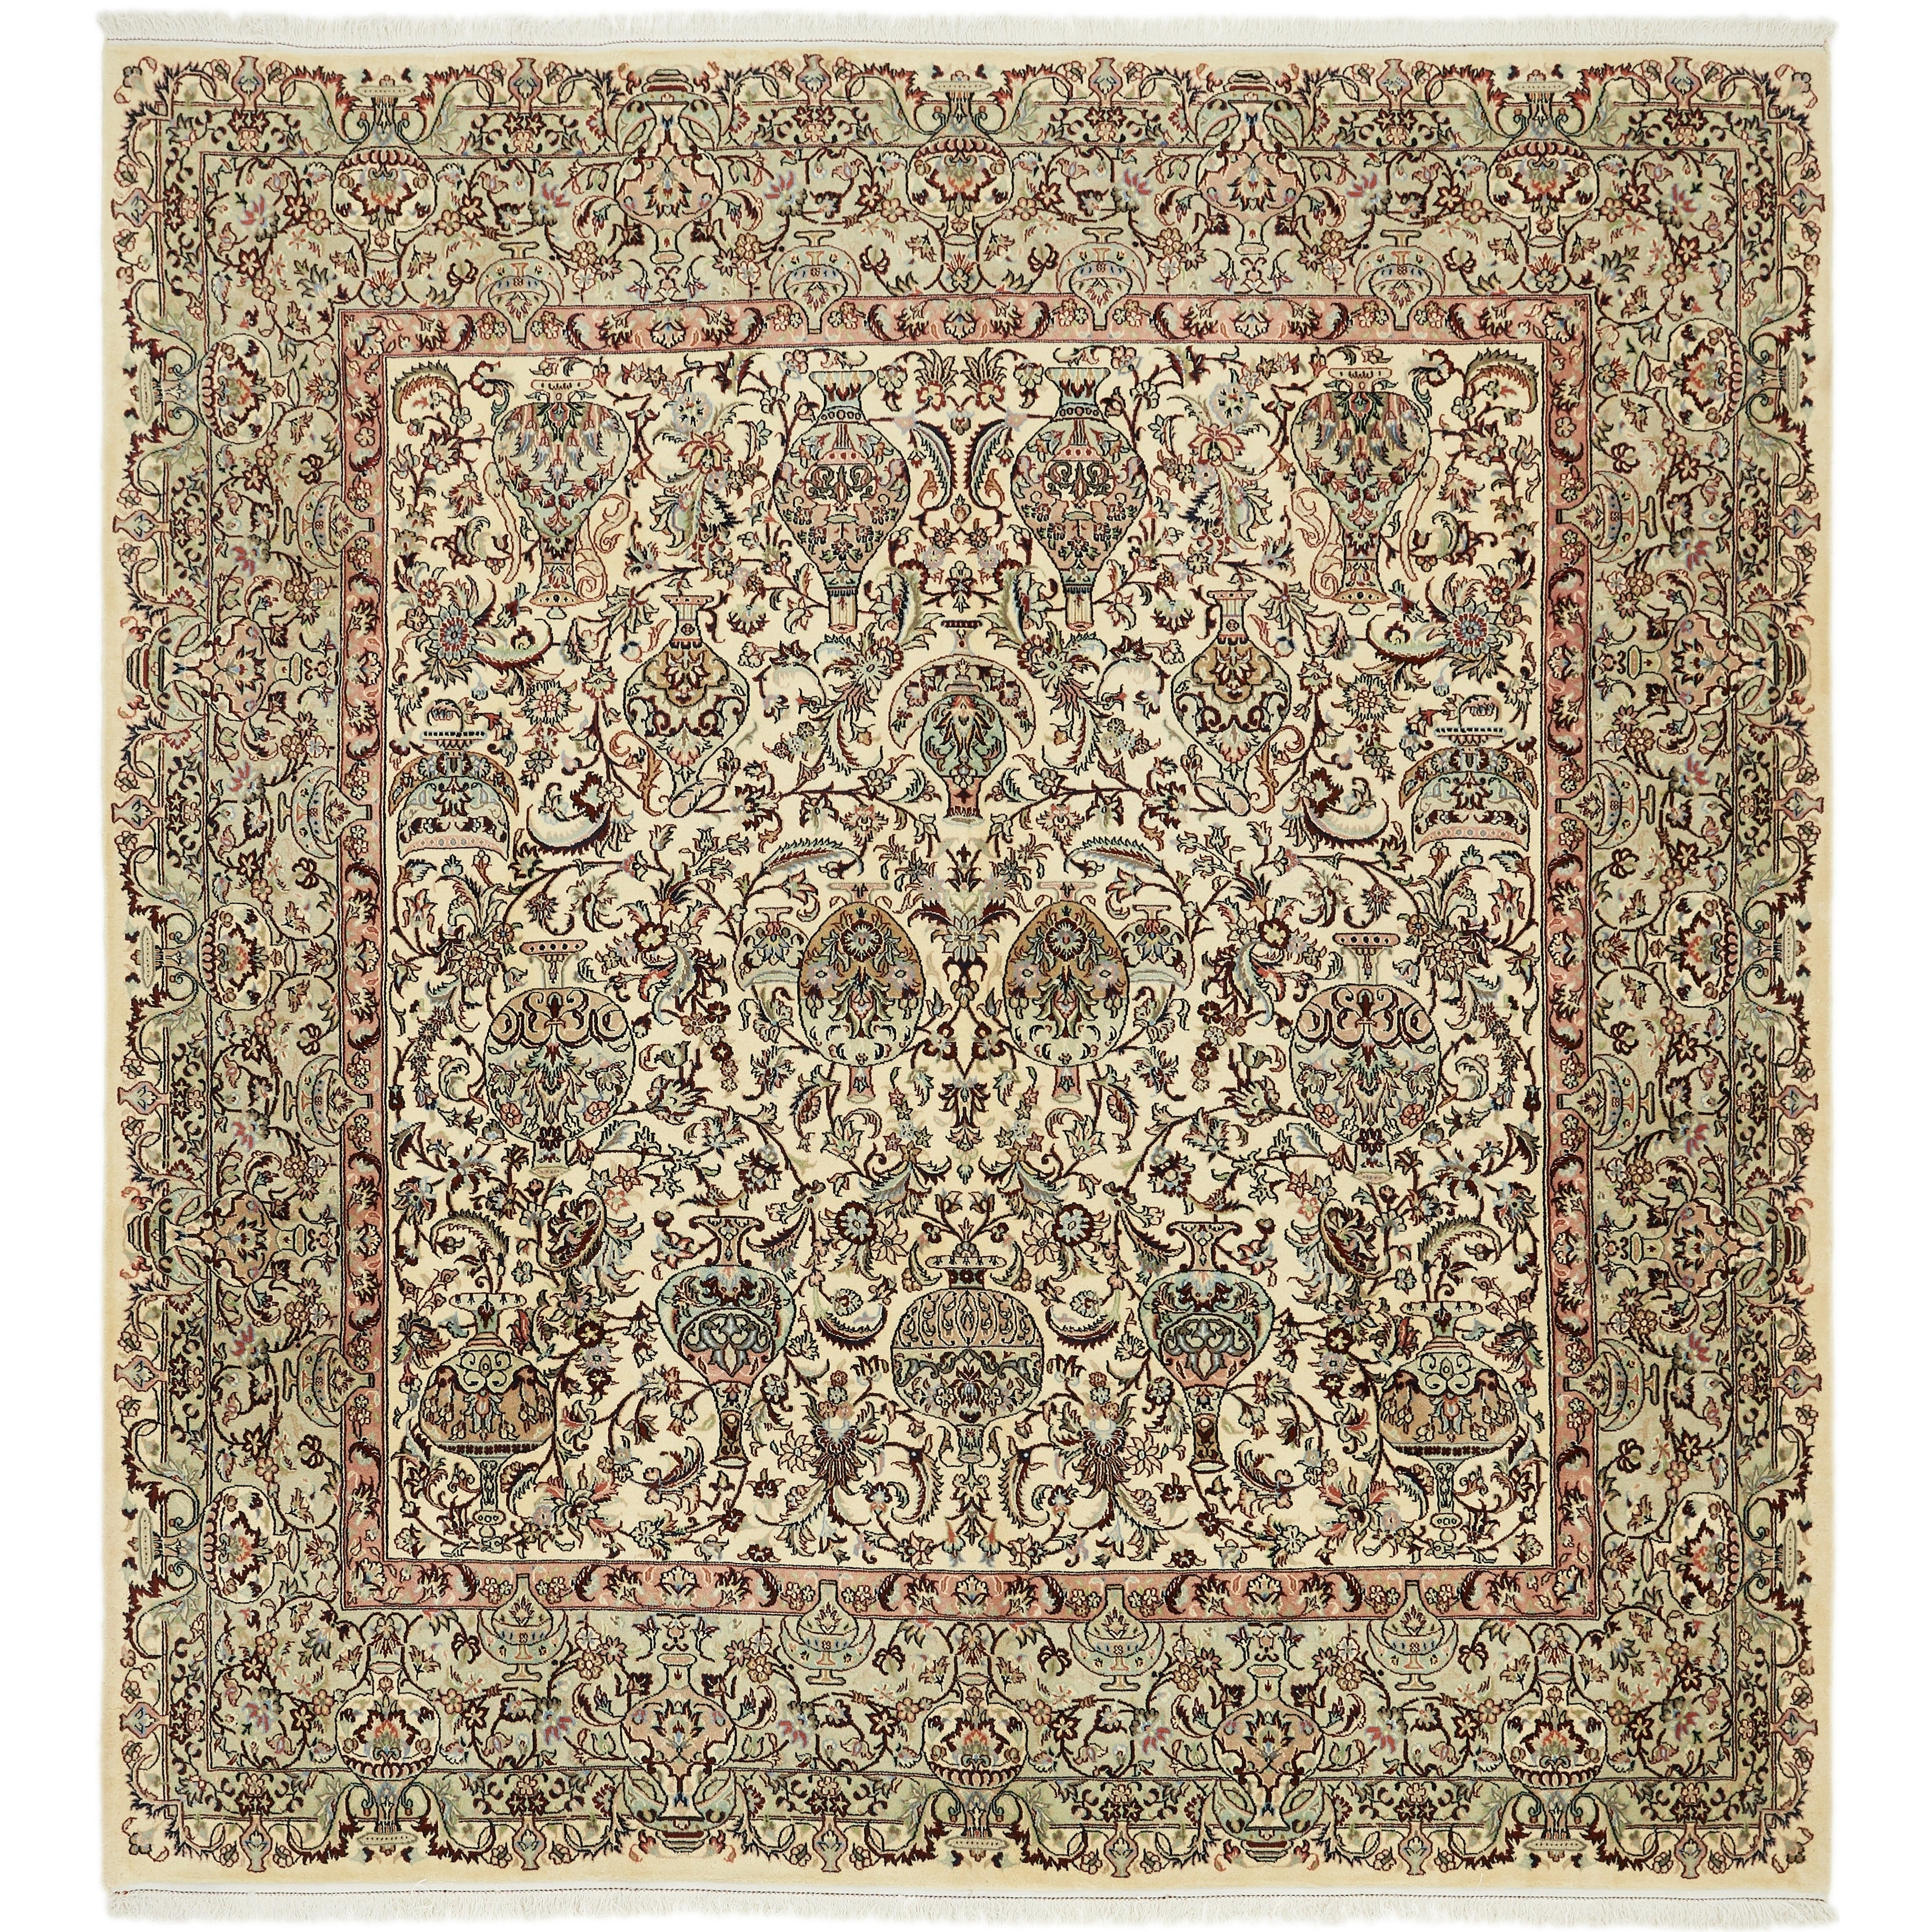 Hand Knotted Kashmar Wool Area Rug - 9 5 x 10 2 (Ivory - 9 5 x 10 2)